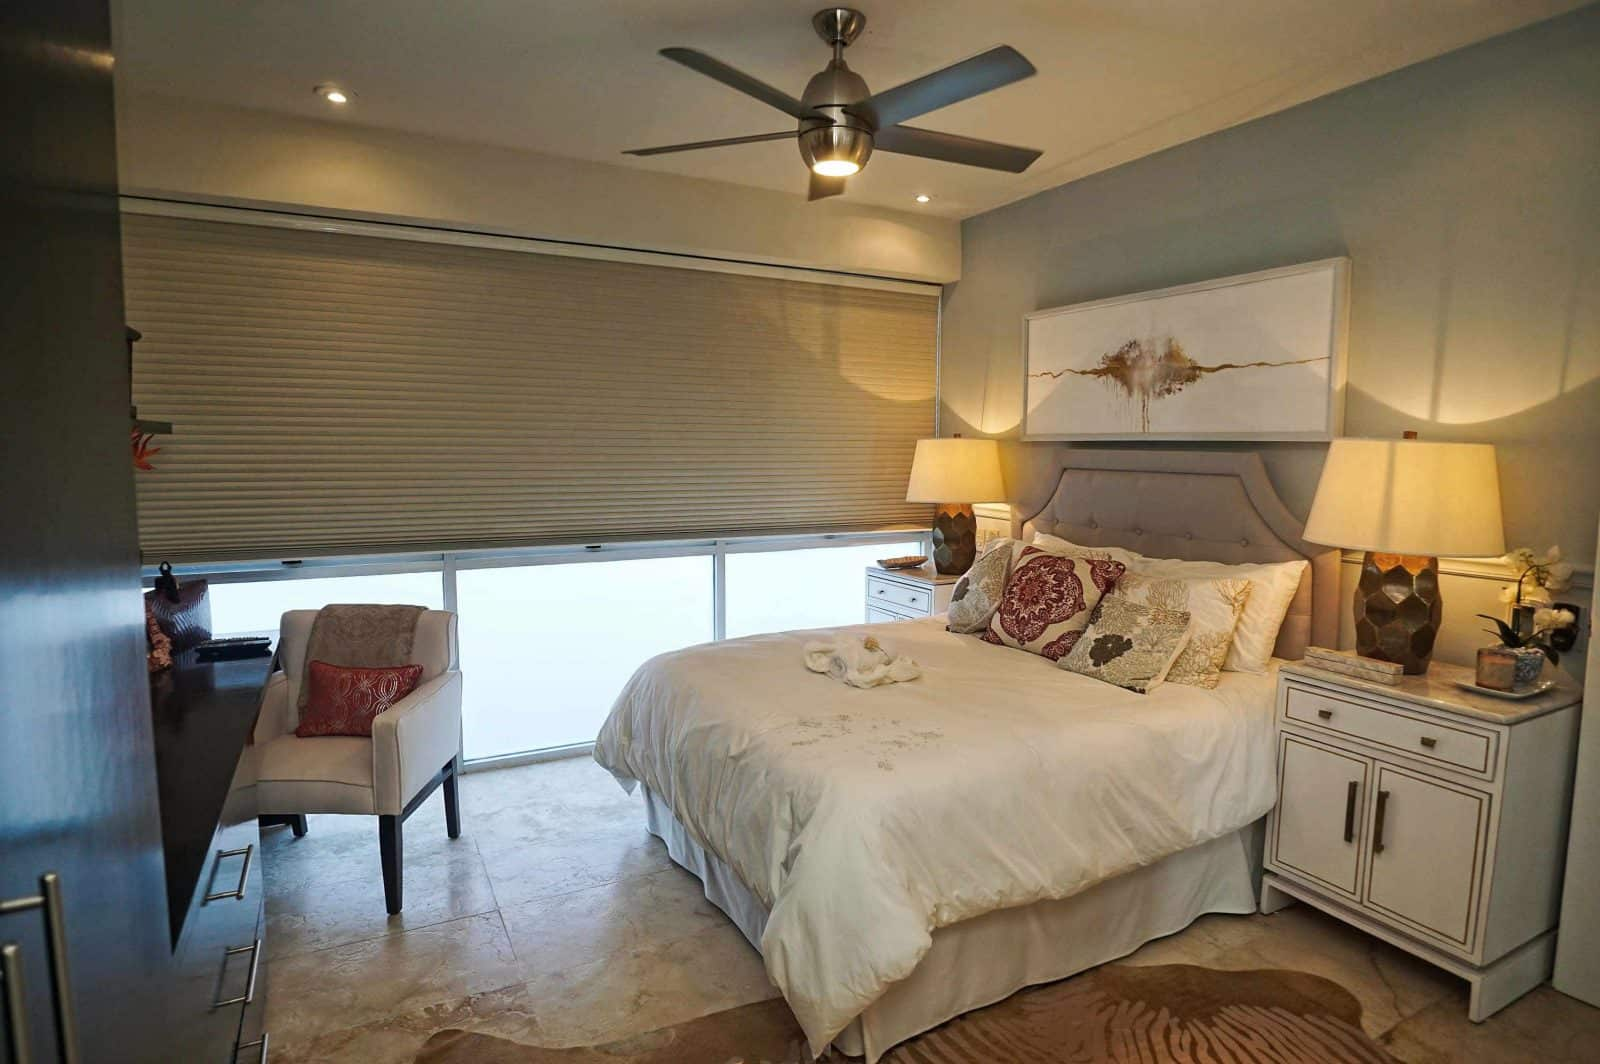 Magia penthouse with 4 bedrooms